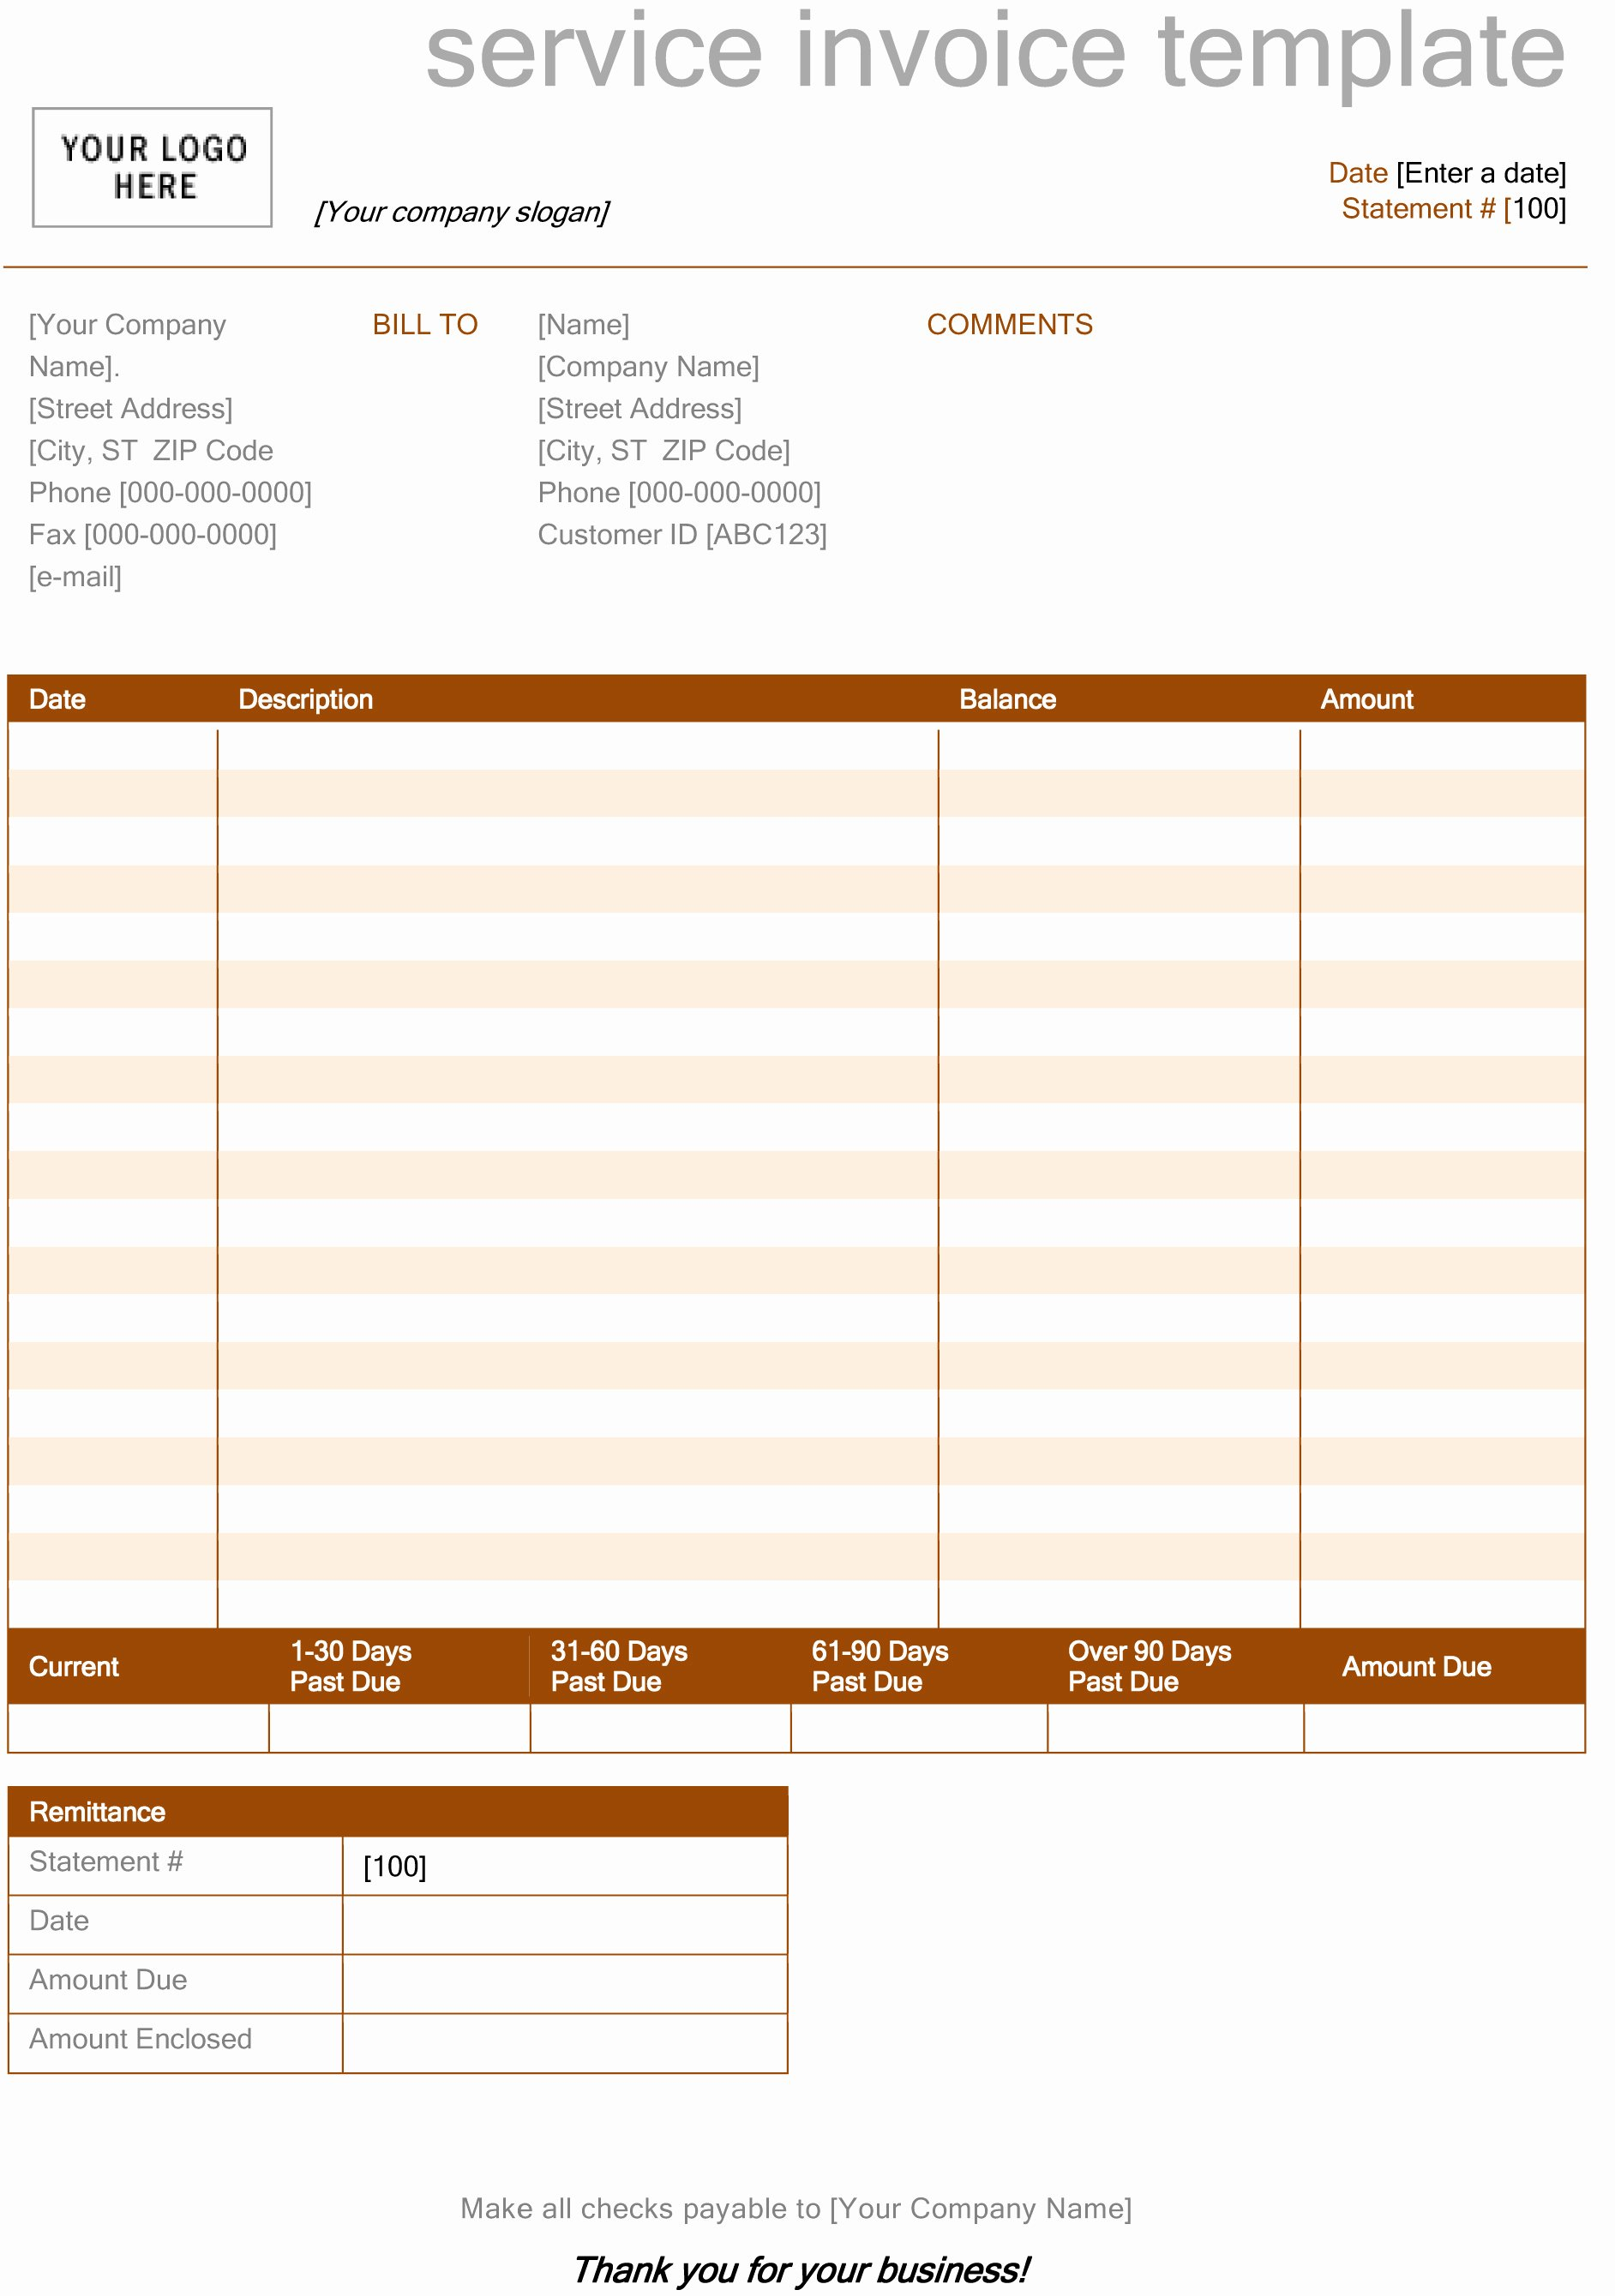 post service invoice template word